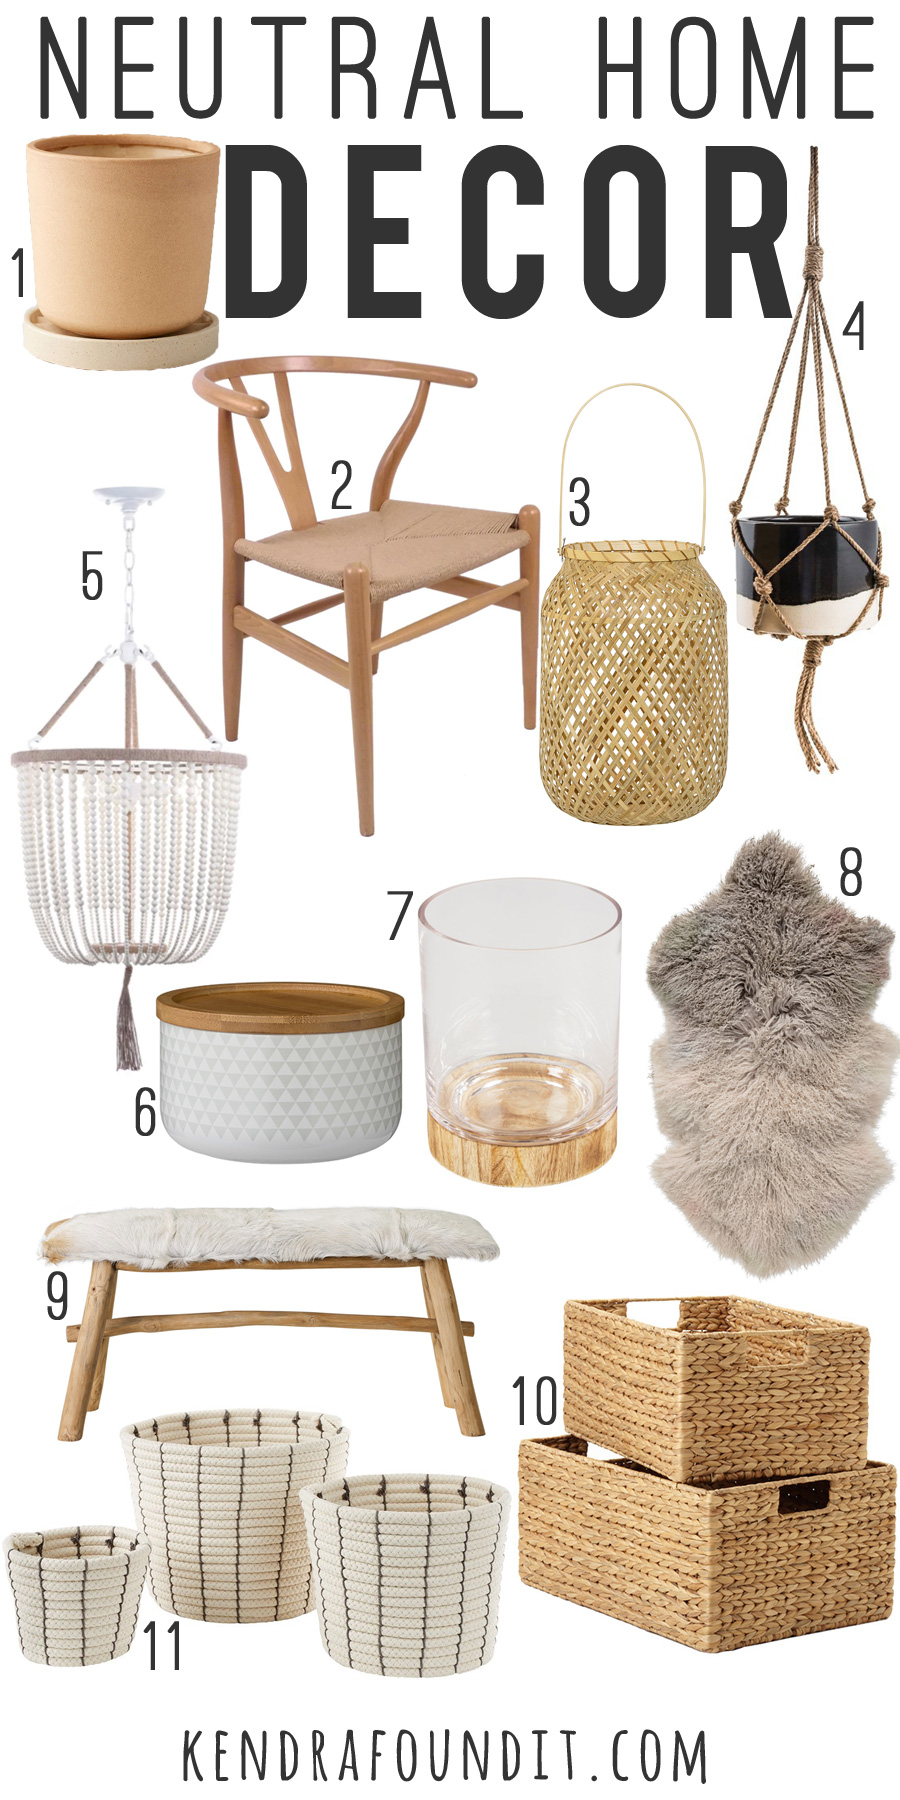 Neutral home decor essentials: sheepskin rug, hanging planters, rope baskets, and bleached washed out wood.